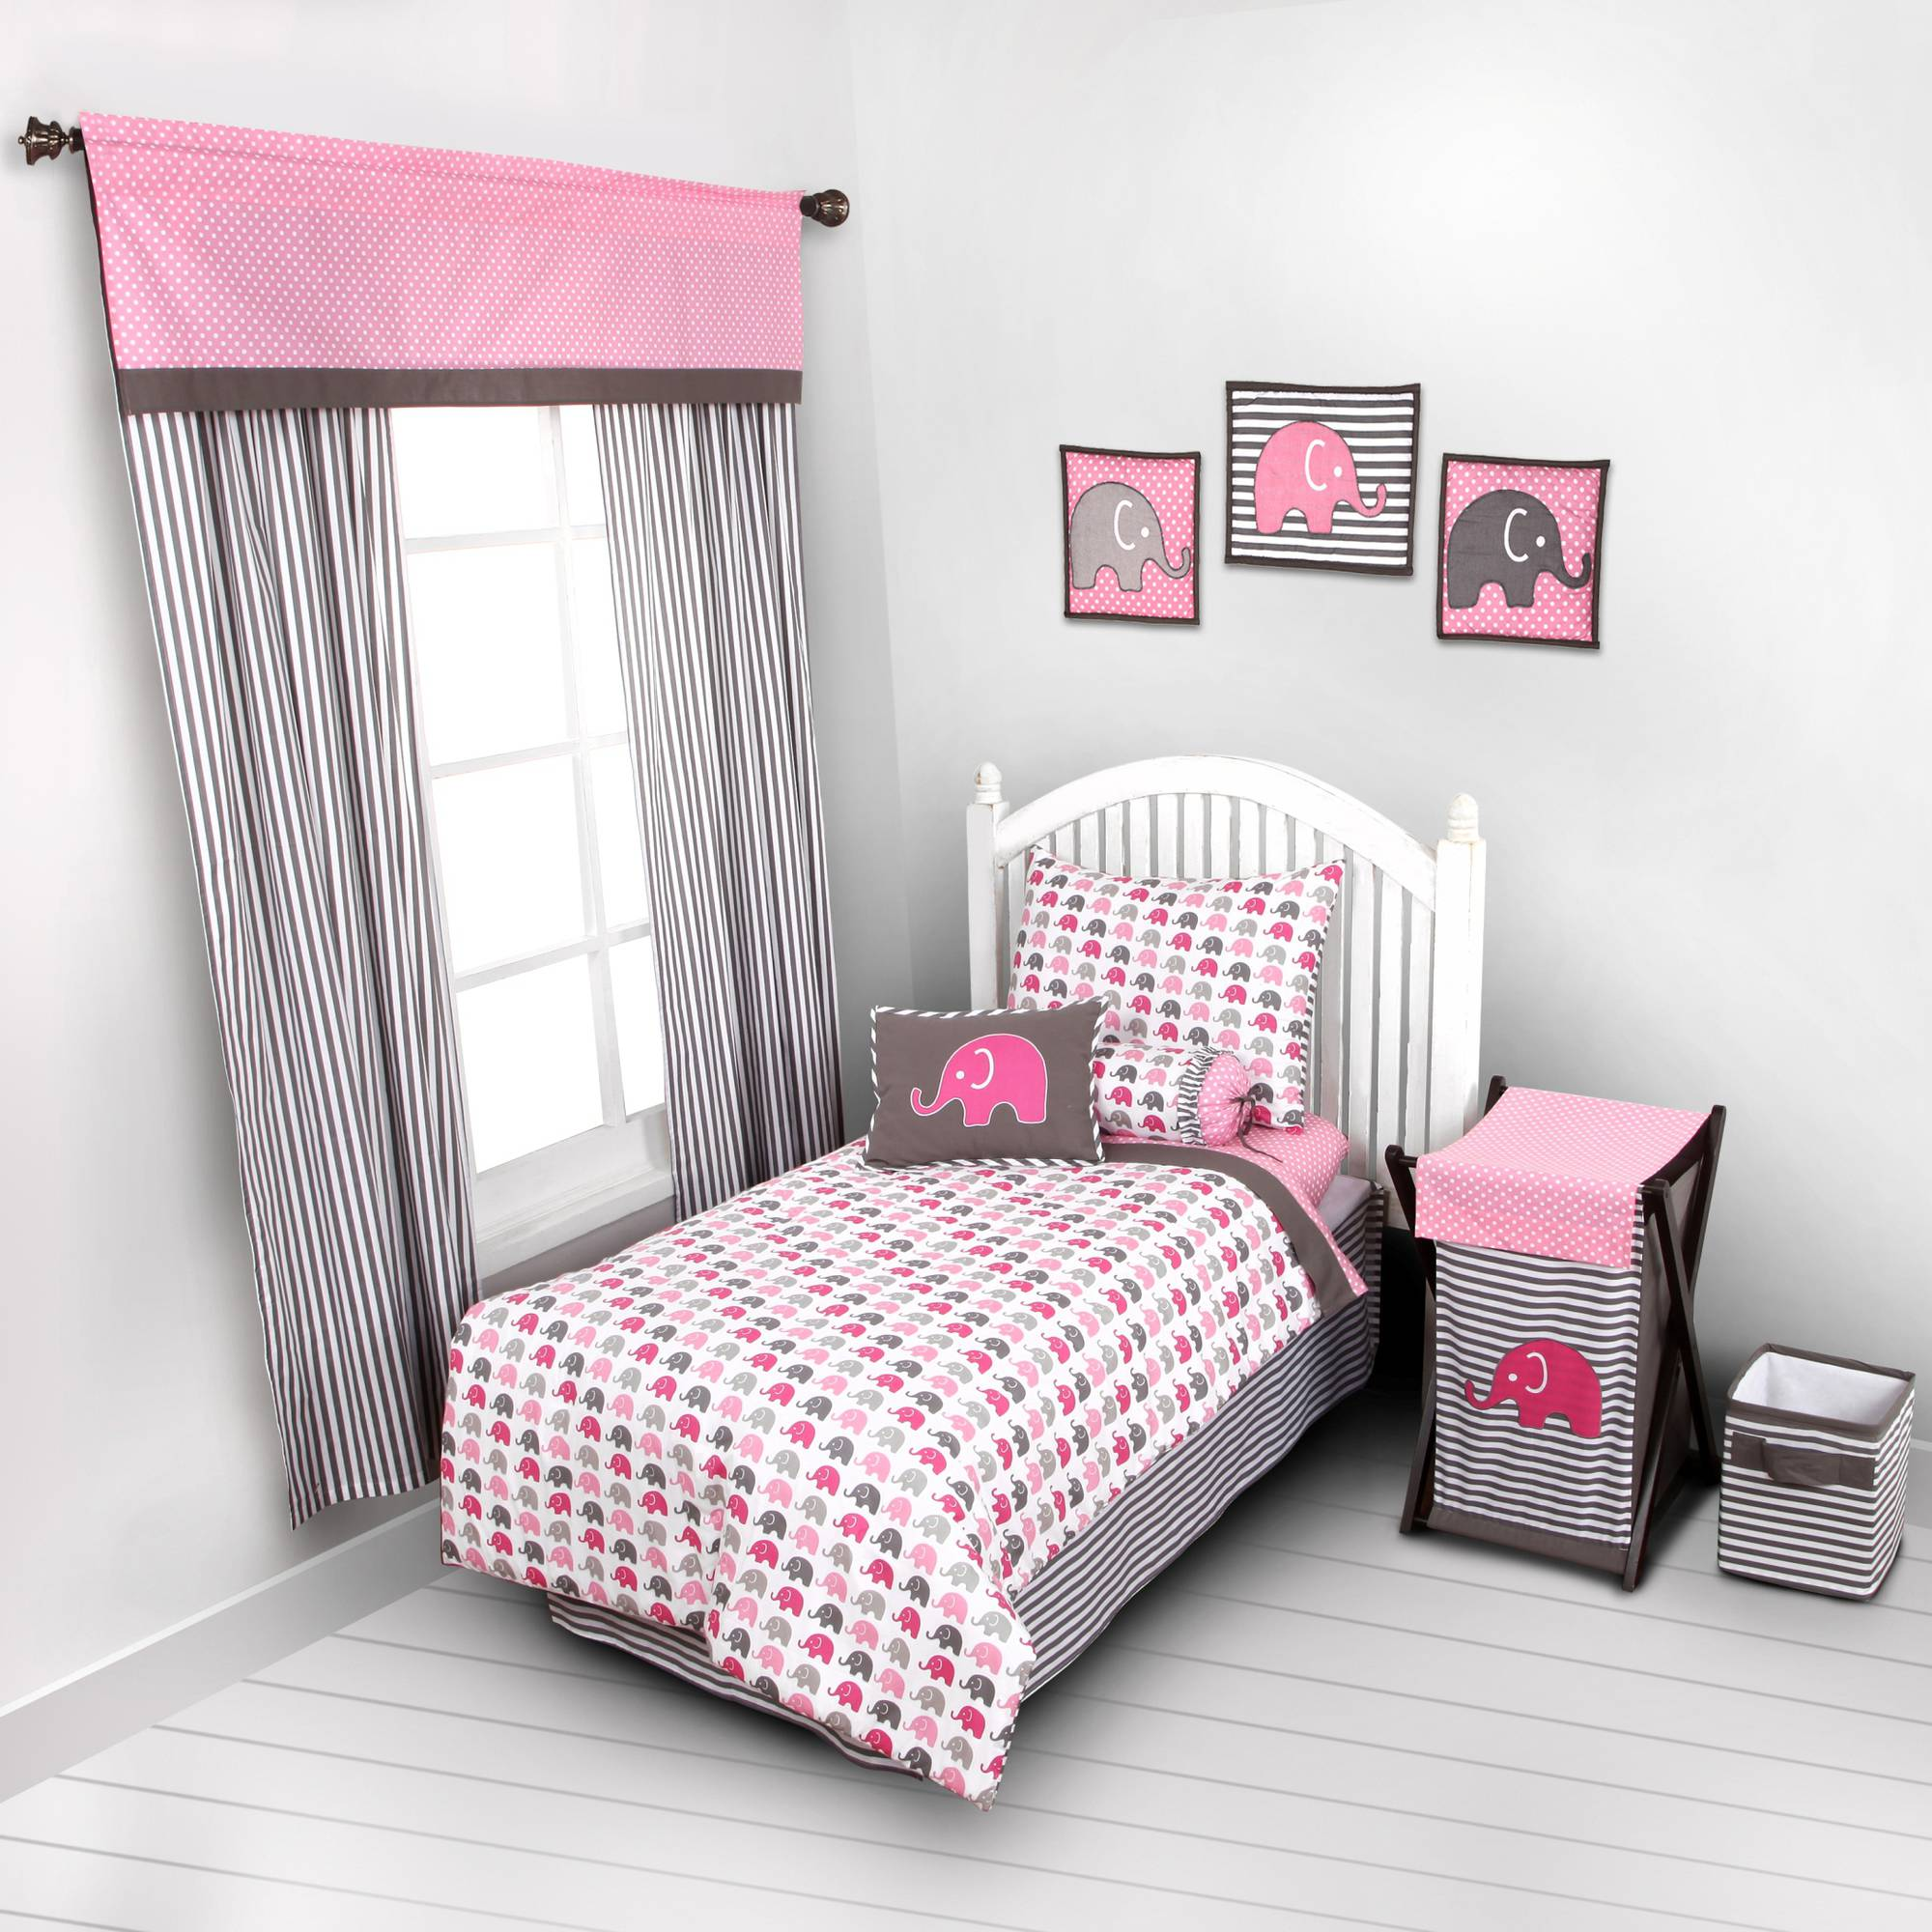 Bacati - Elephants 4-Piece Toddler Bedding set 100% Cotton percale,  Pink/Gray